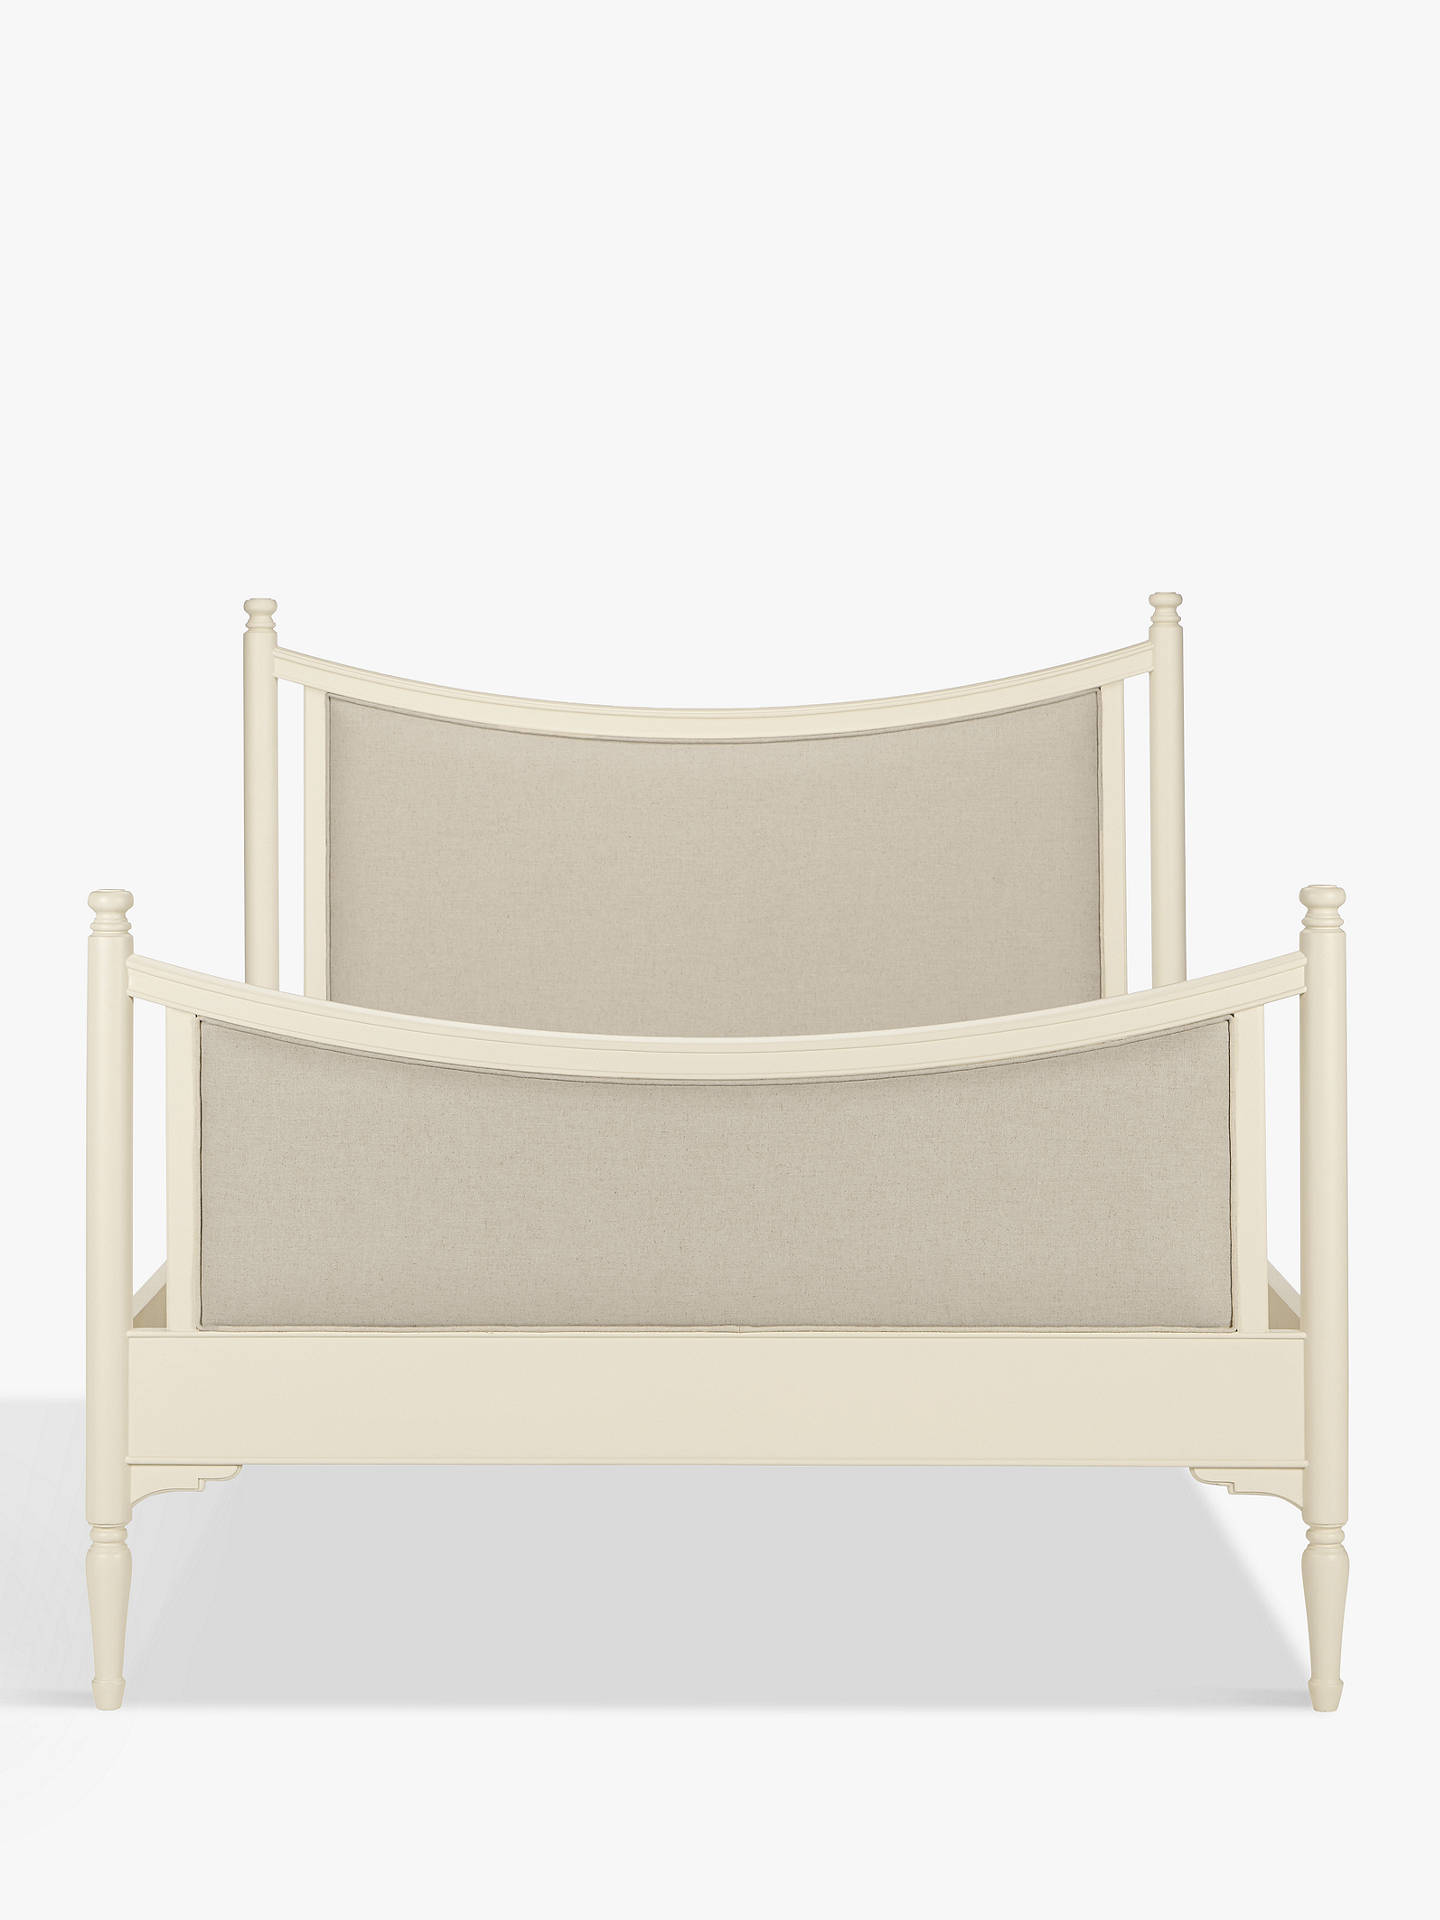 BuyJohn Lewis & Partners Ivybridge High End Bed Frame, Double Online at johnlewis.com